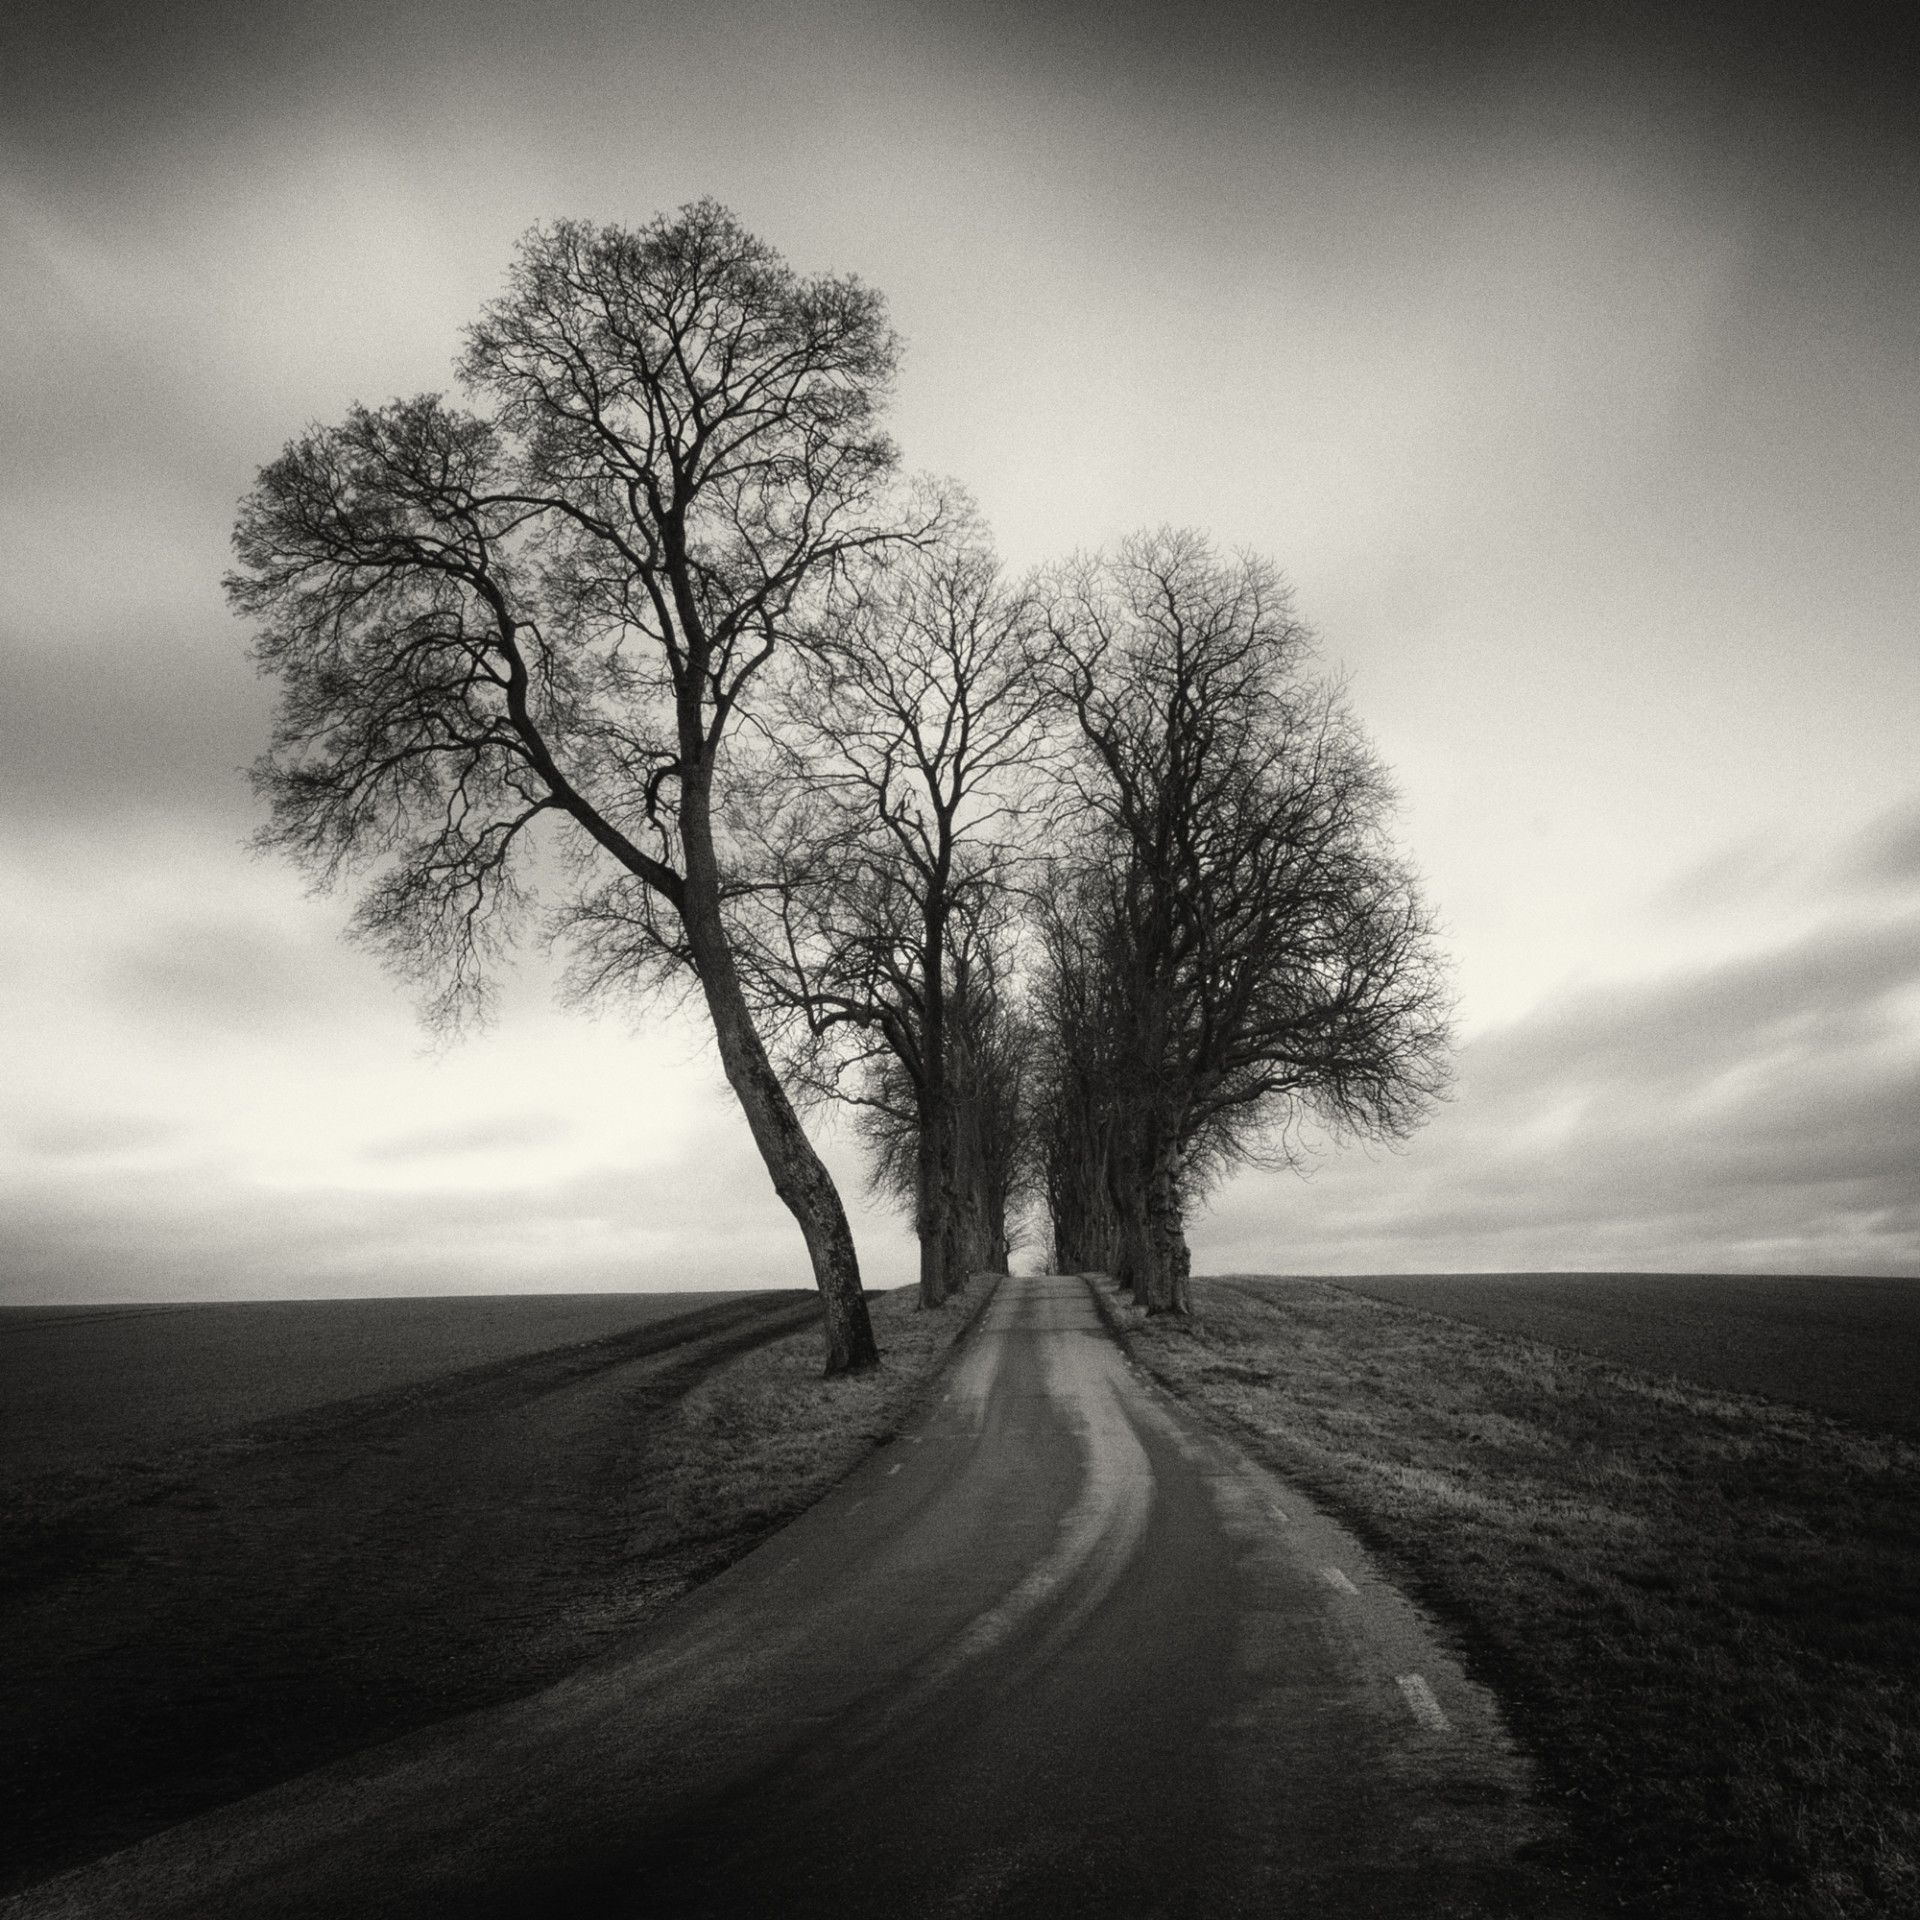 Black and white analog photographs explore the serenity of long meandering roads colossal